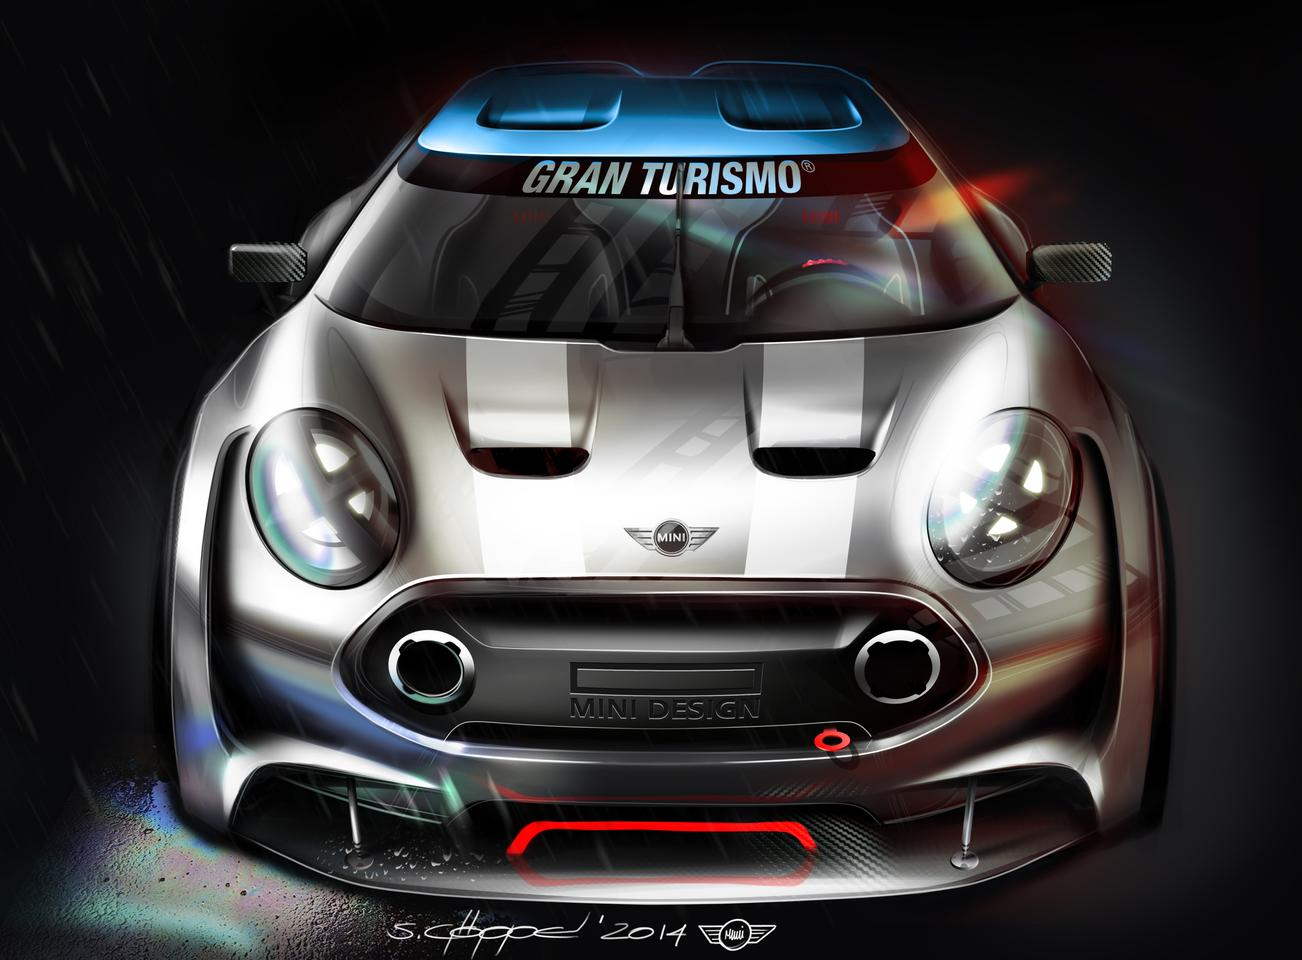 The Mini Clubman Vision Gran Turismo will be available as a game update in Gran Turismo 6